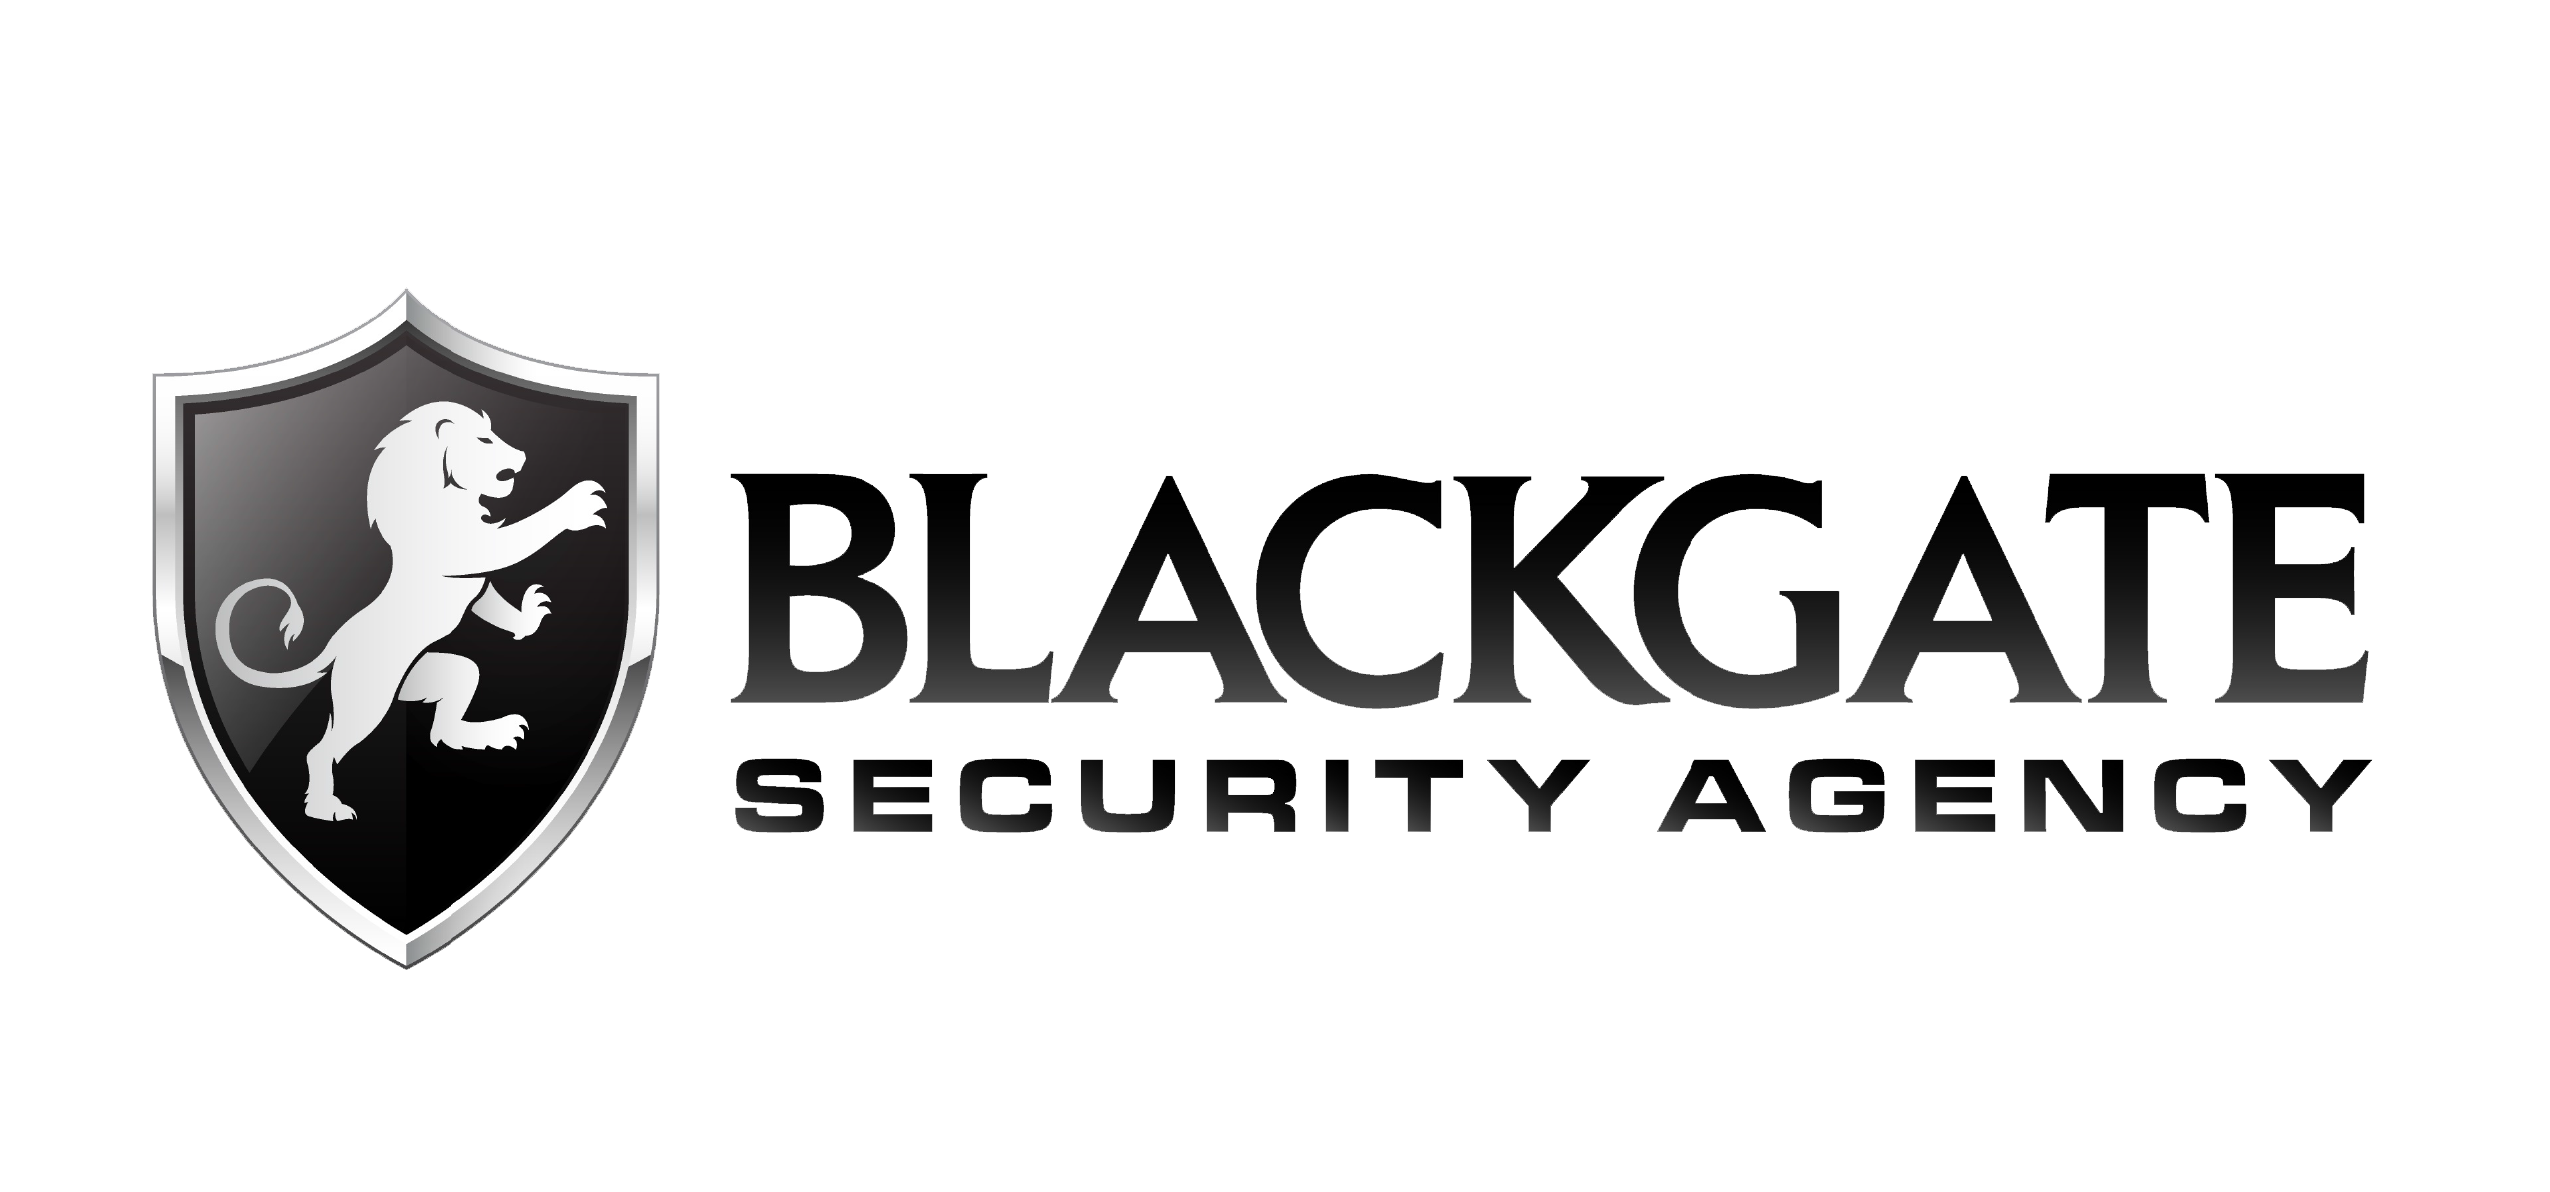 Blackgate Security Agency